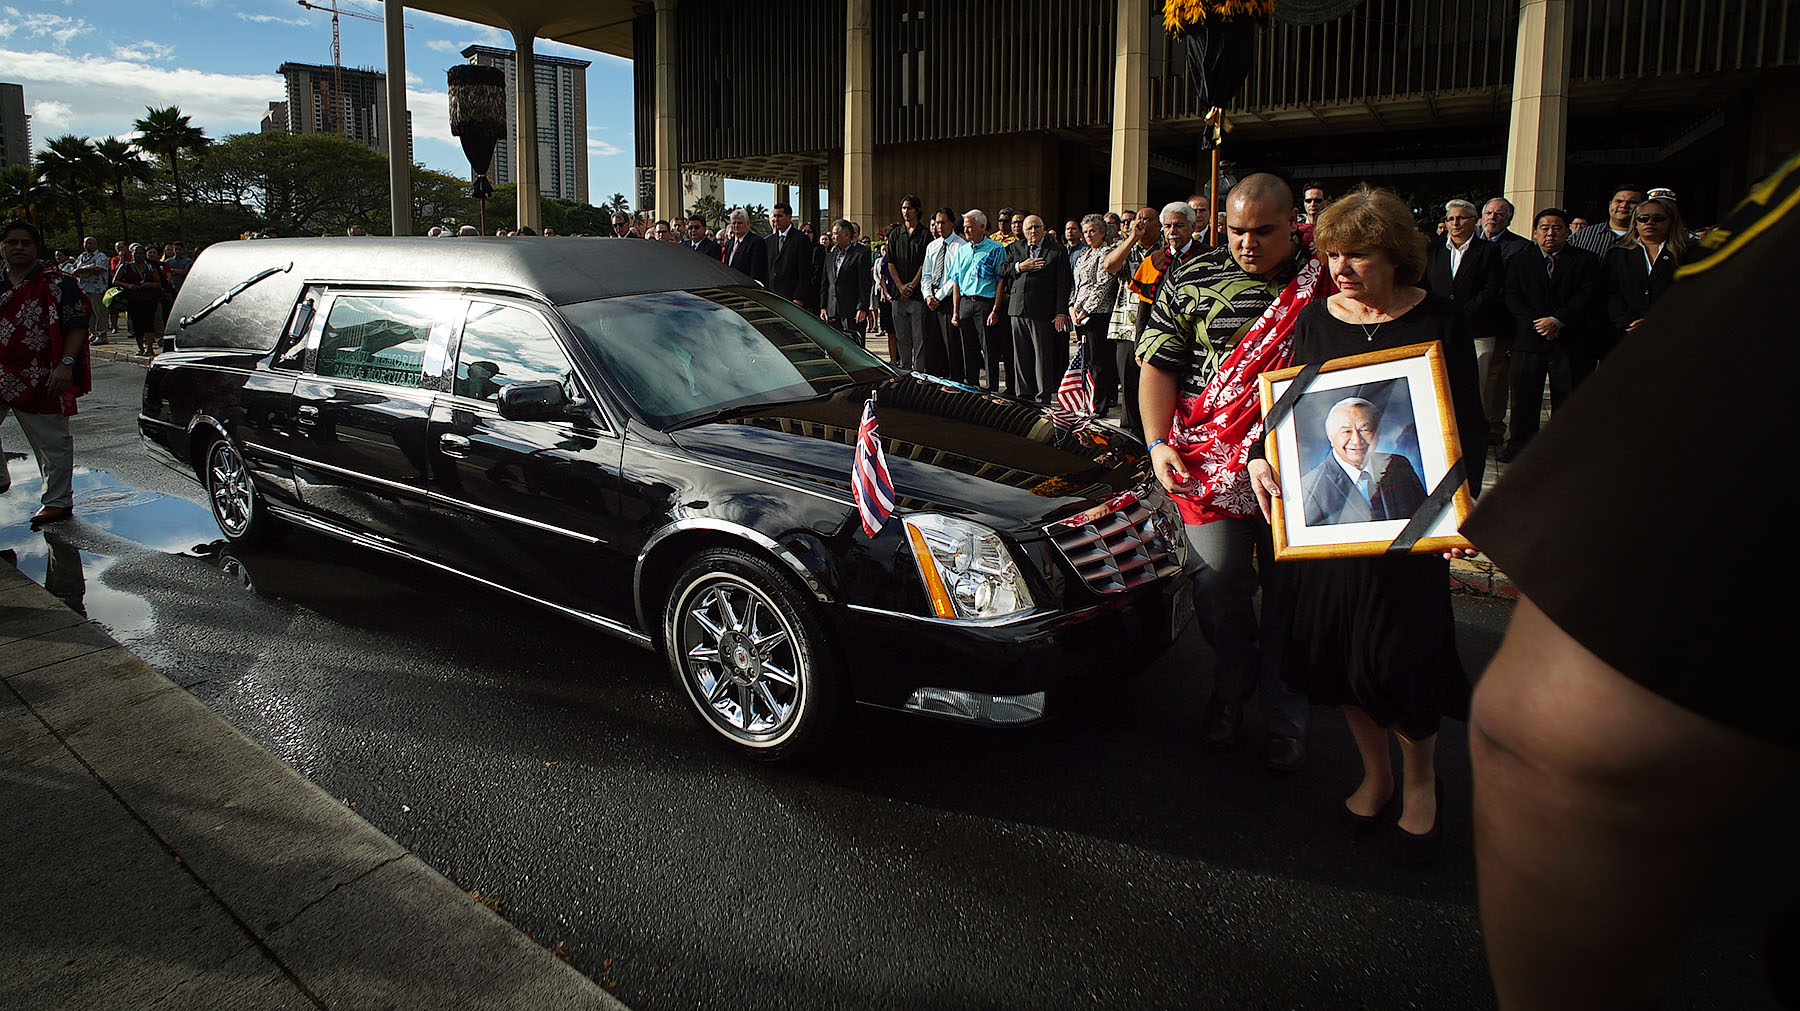 <p>Feb. 2: The late Sen. Gil Kahele&#8217;s wife, Linda, watches as a hearse carrying the body of the Big Island legislator reaches the Capitol. <em>Cory Lum/Civil Beat</em></p>